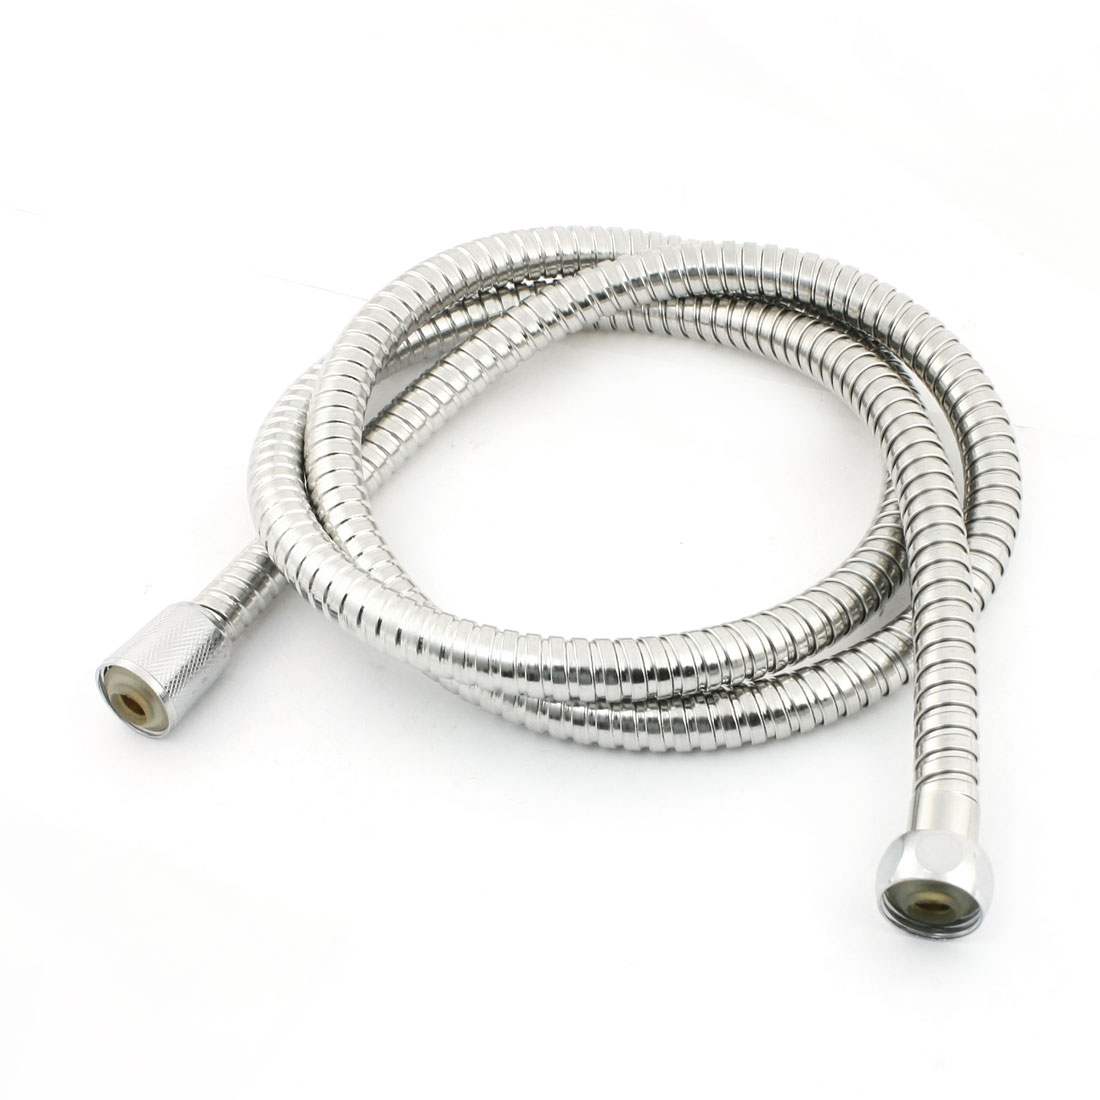 "Bathroom 1/2""NPT F/F Thread Spiral Flexible Shower Hose Pipe 57"" Long"